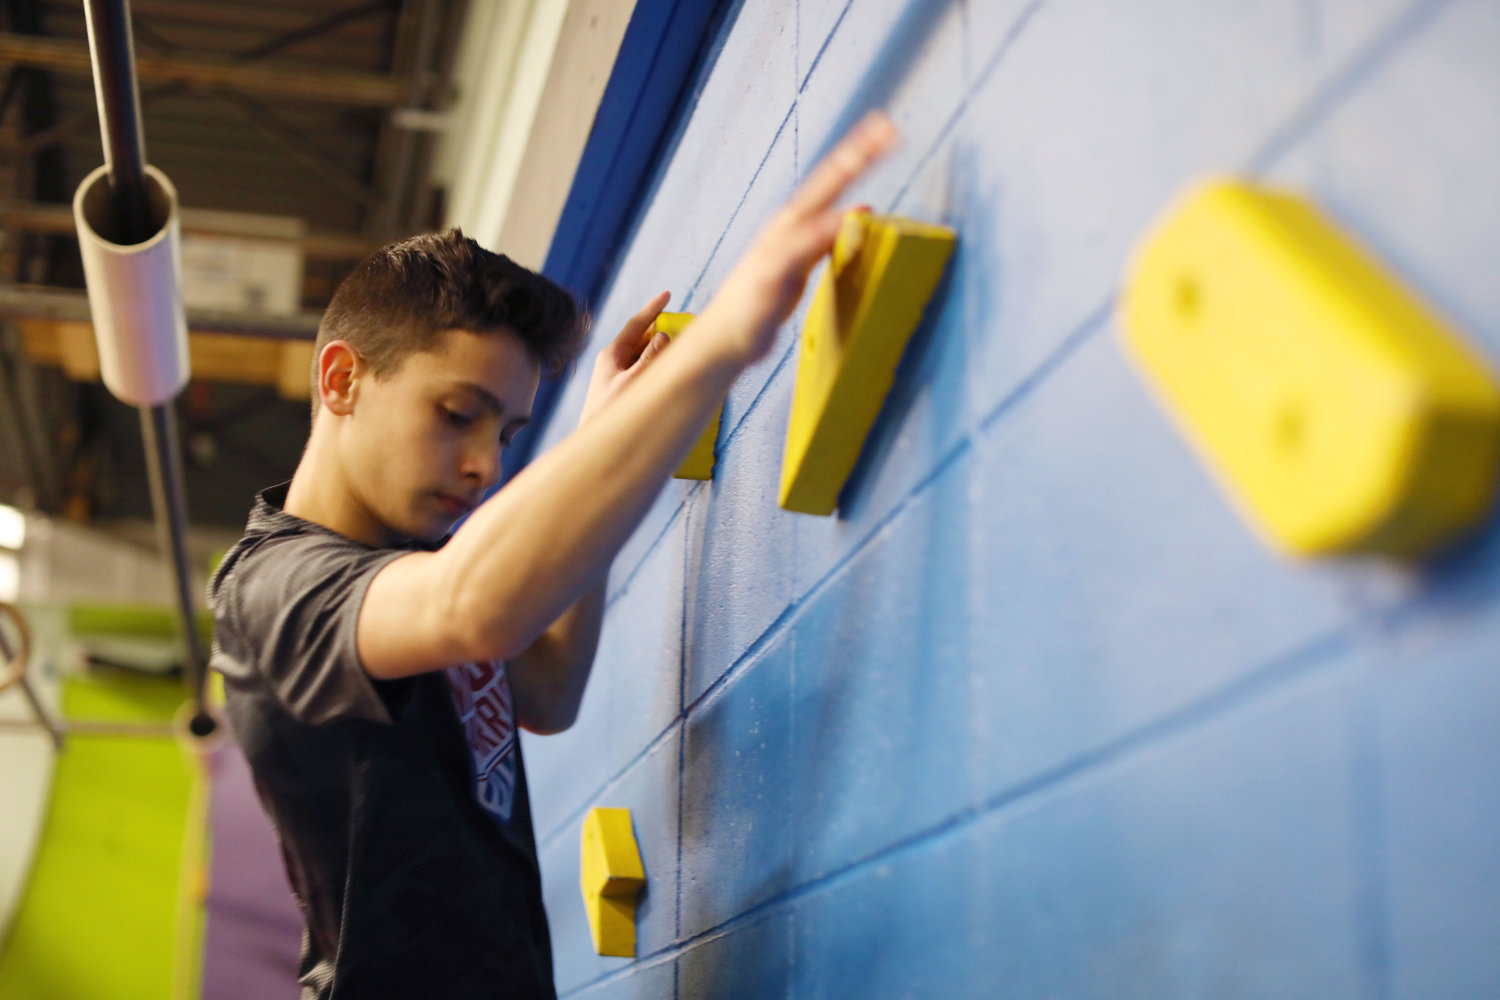 Carson Dean, 13, trains at his at his gym Laid-back Fitness in Warwick.